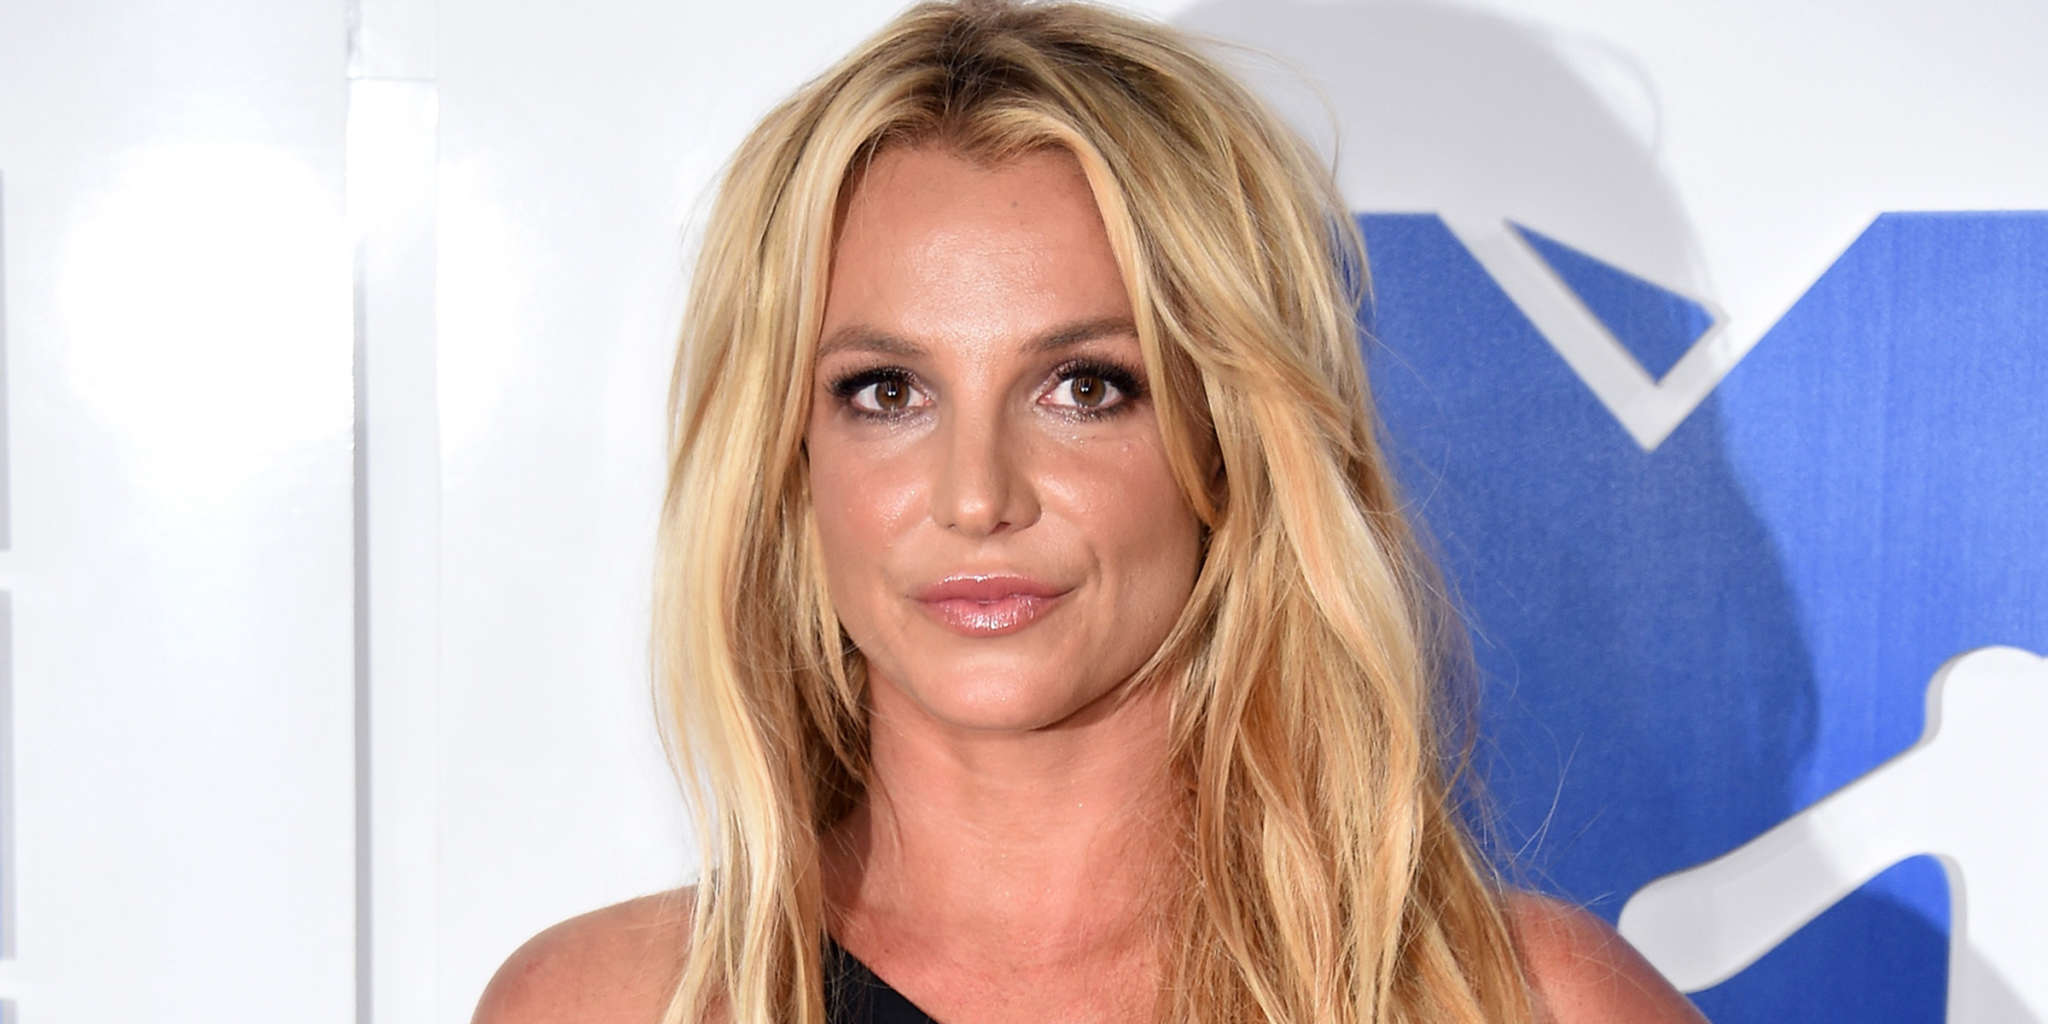 """""""britney-spears-opens-up-about-her-insecurities-growing-up-says-her-teeth-and-forehead-made-her-feel-like-an-ugly-duckling"""""""